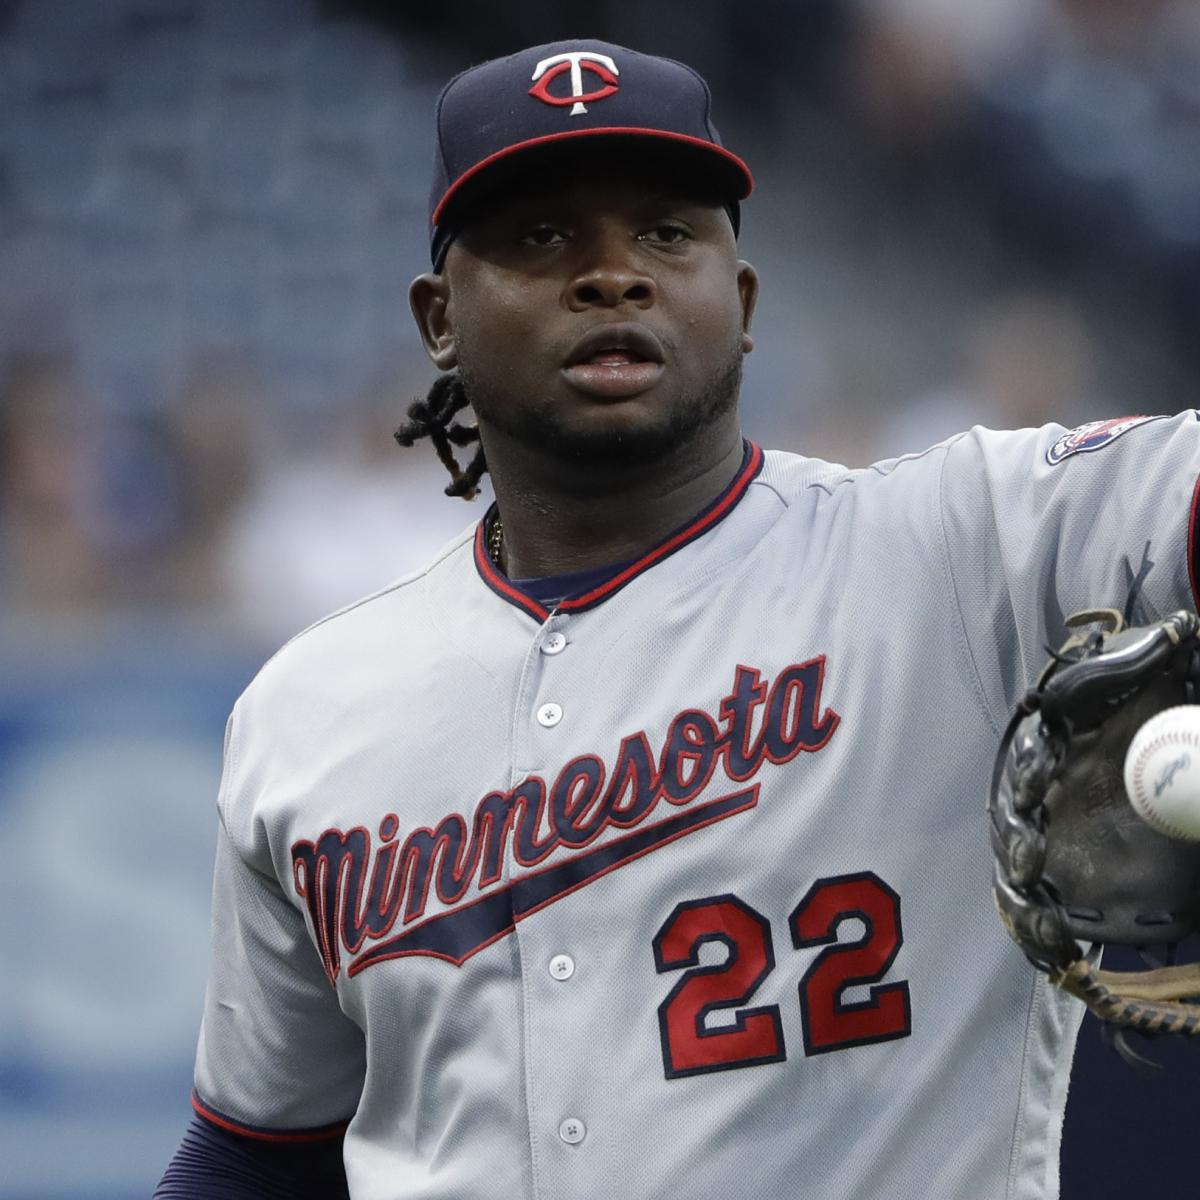 Miguel Sano's Sexual Misconduct Allegations Under MLB Investigation